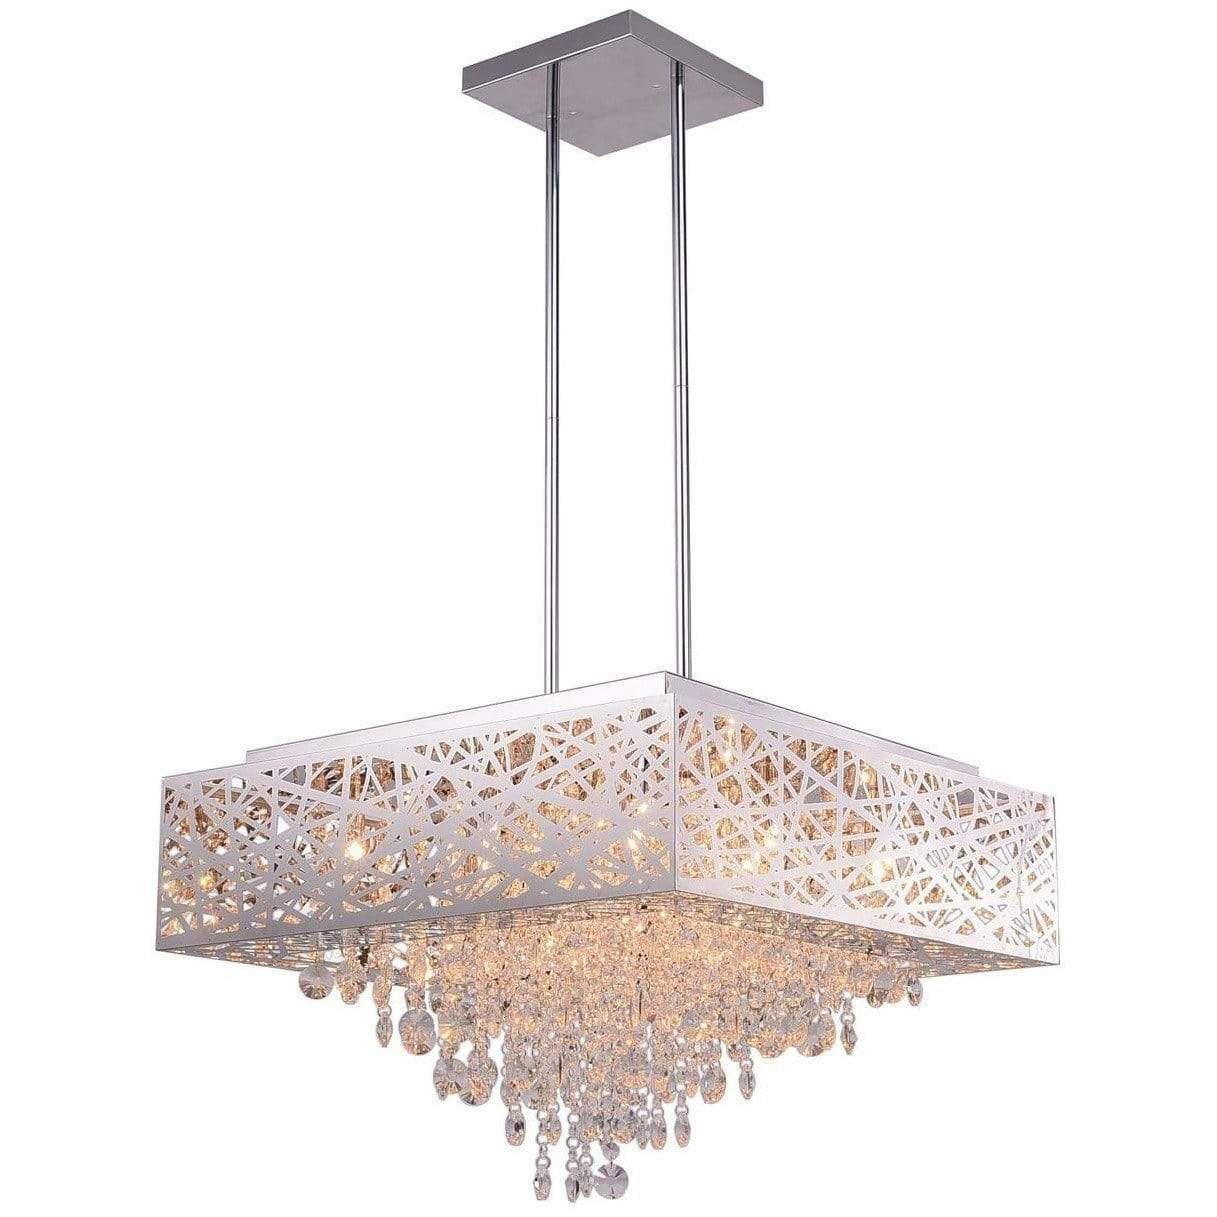 CWI Lighting Chandeliers Chrome / K9 Clear Eternity 12 Light Chandelier with Chrome Finish by CWI Lighting 1032P22-12-601-S